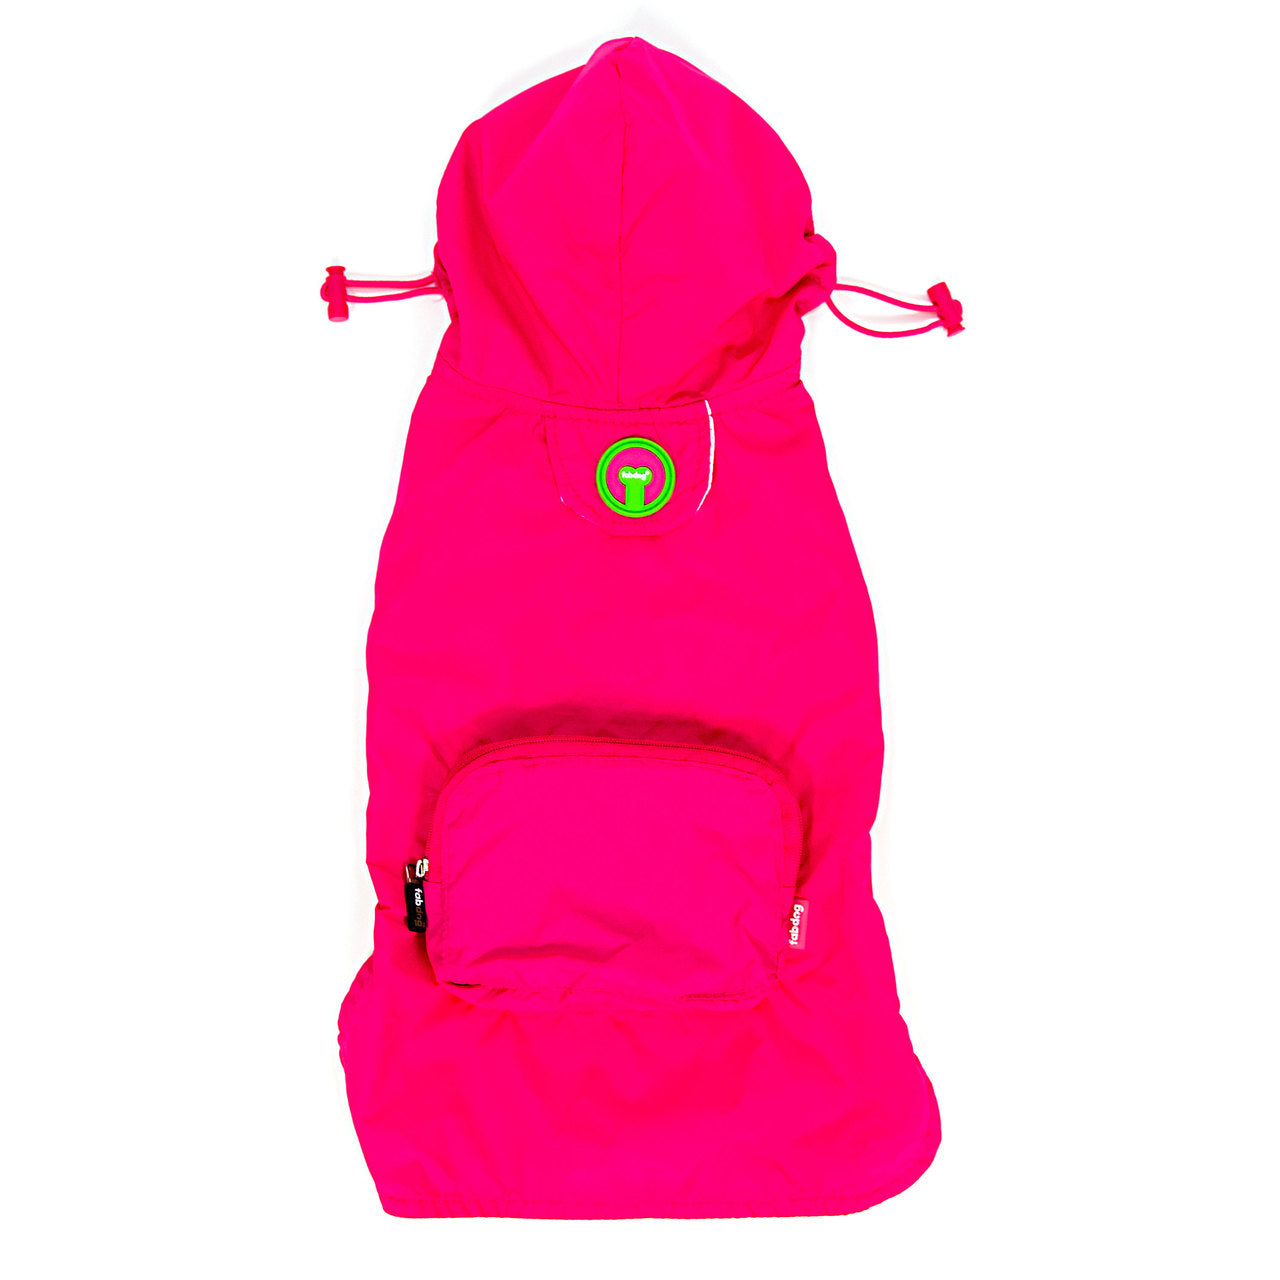 Hot Pink Packaway Raincoat